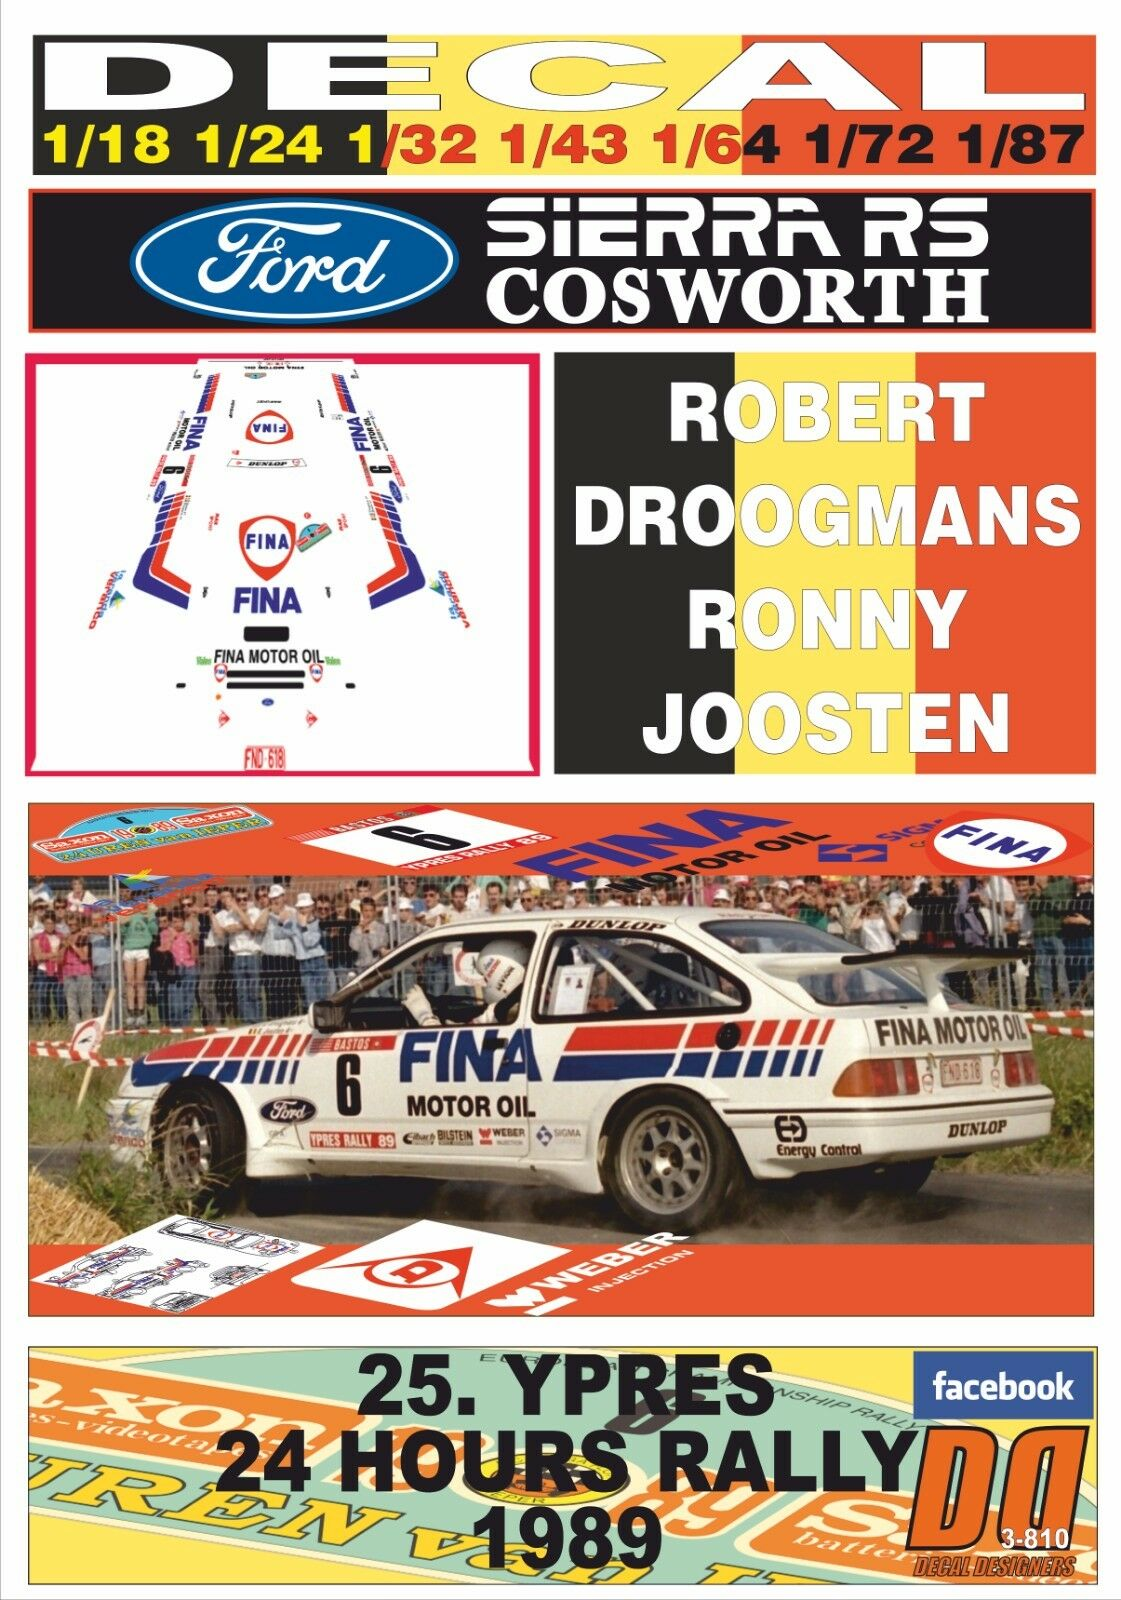 DECAL FORD SIERRA RS COSWORTH R.DROOGMANS YPRES 24 HOURS R. 1989 WINNER (08)